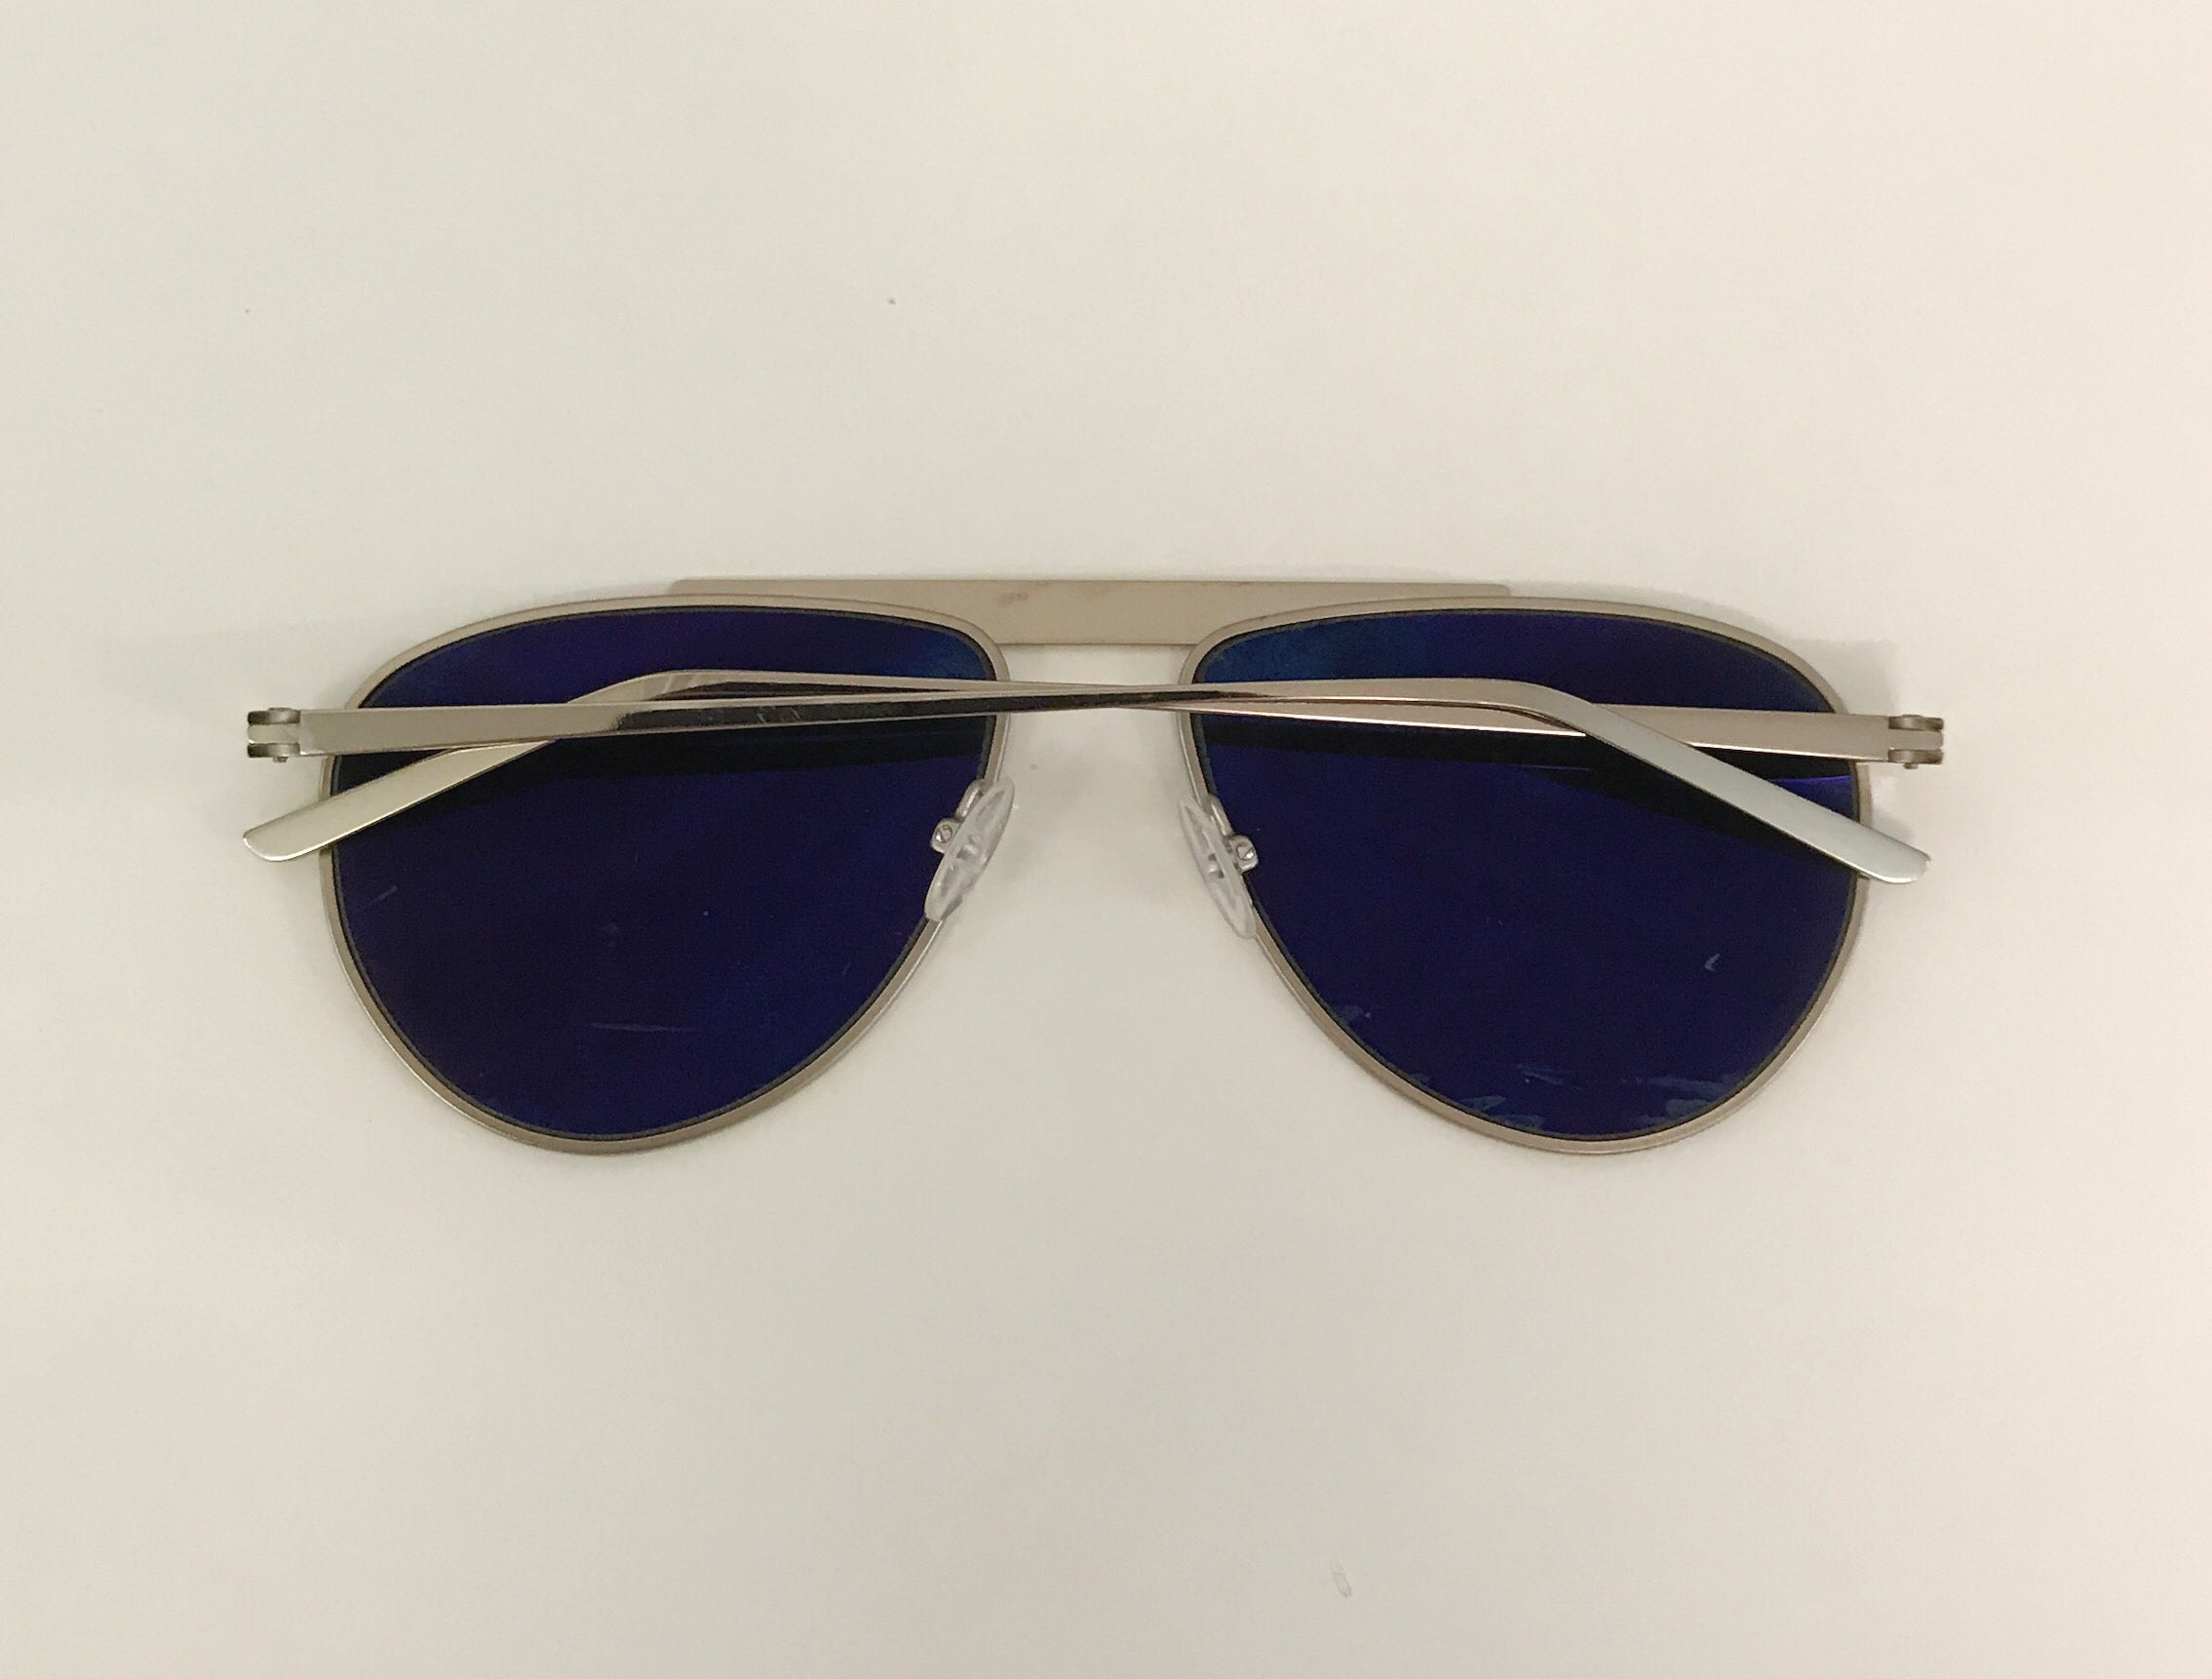 Stephen Sunglasses by Peter & May